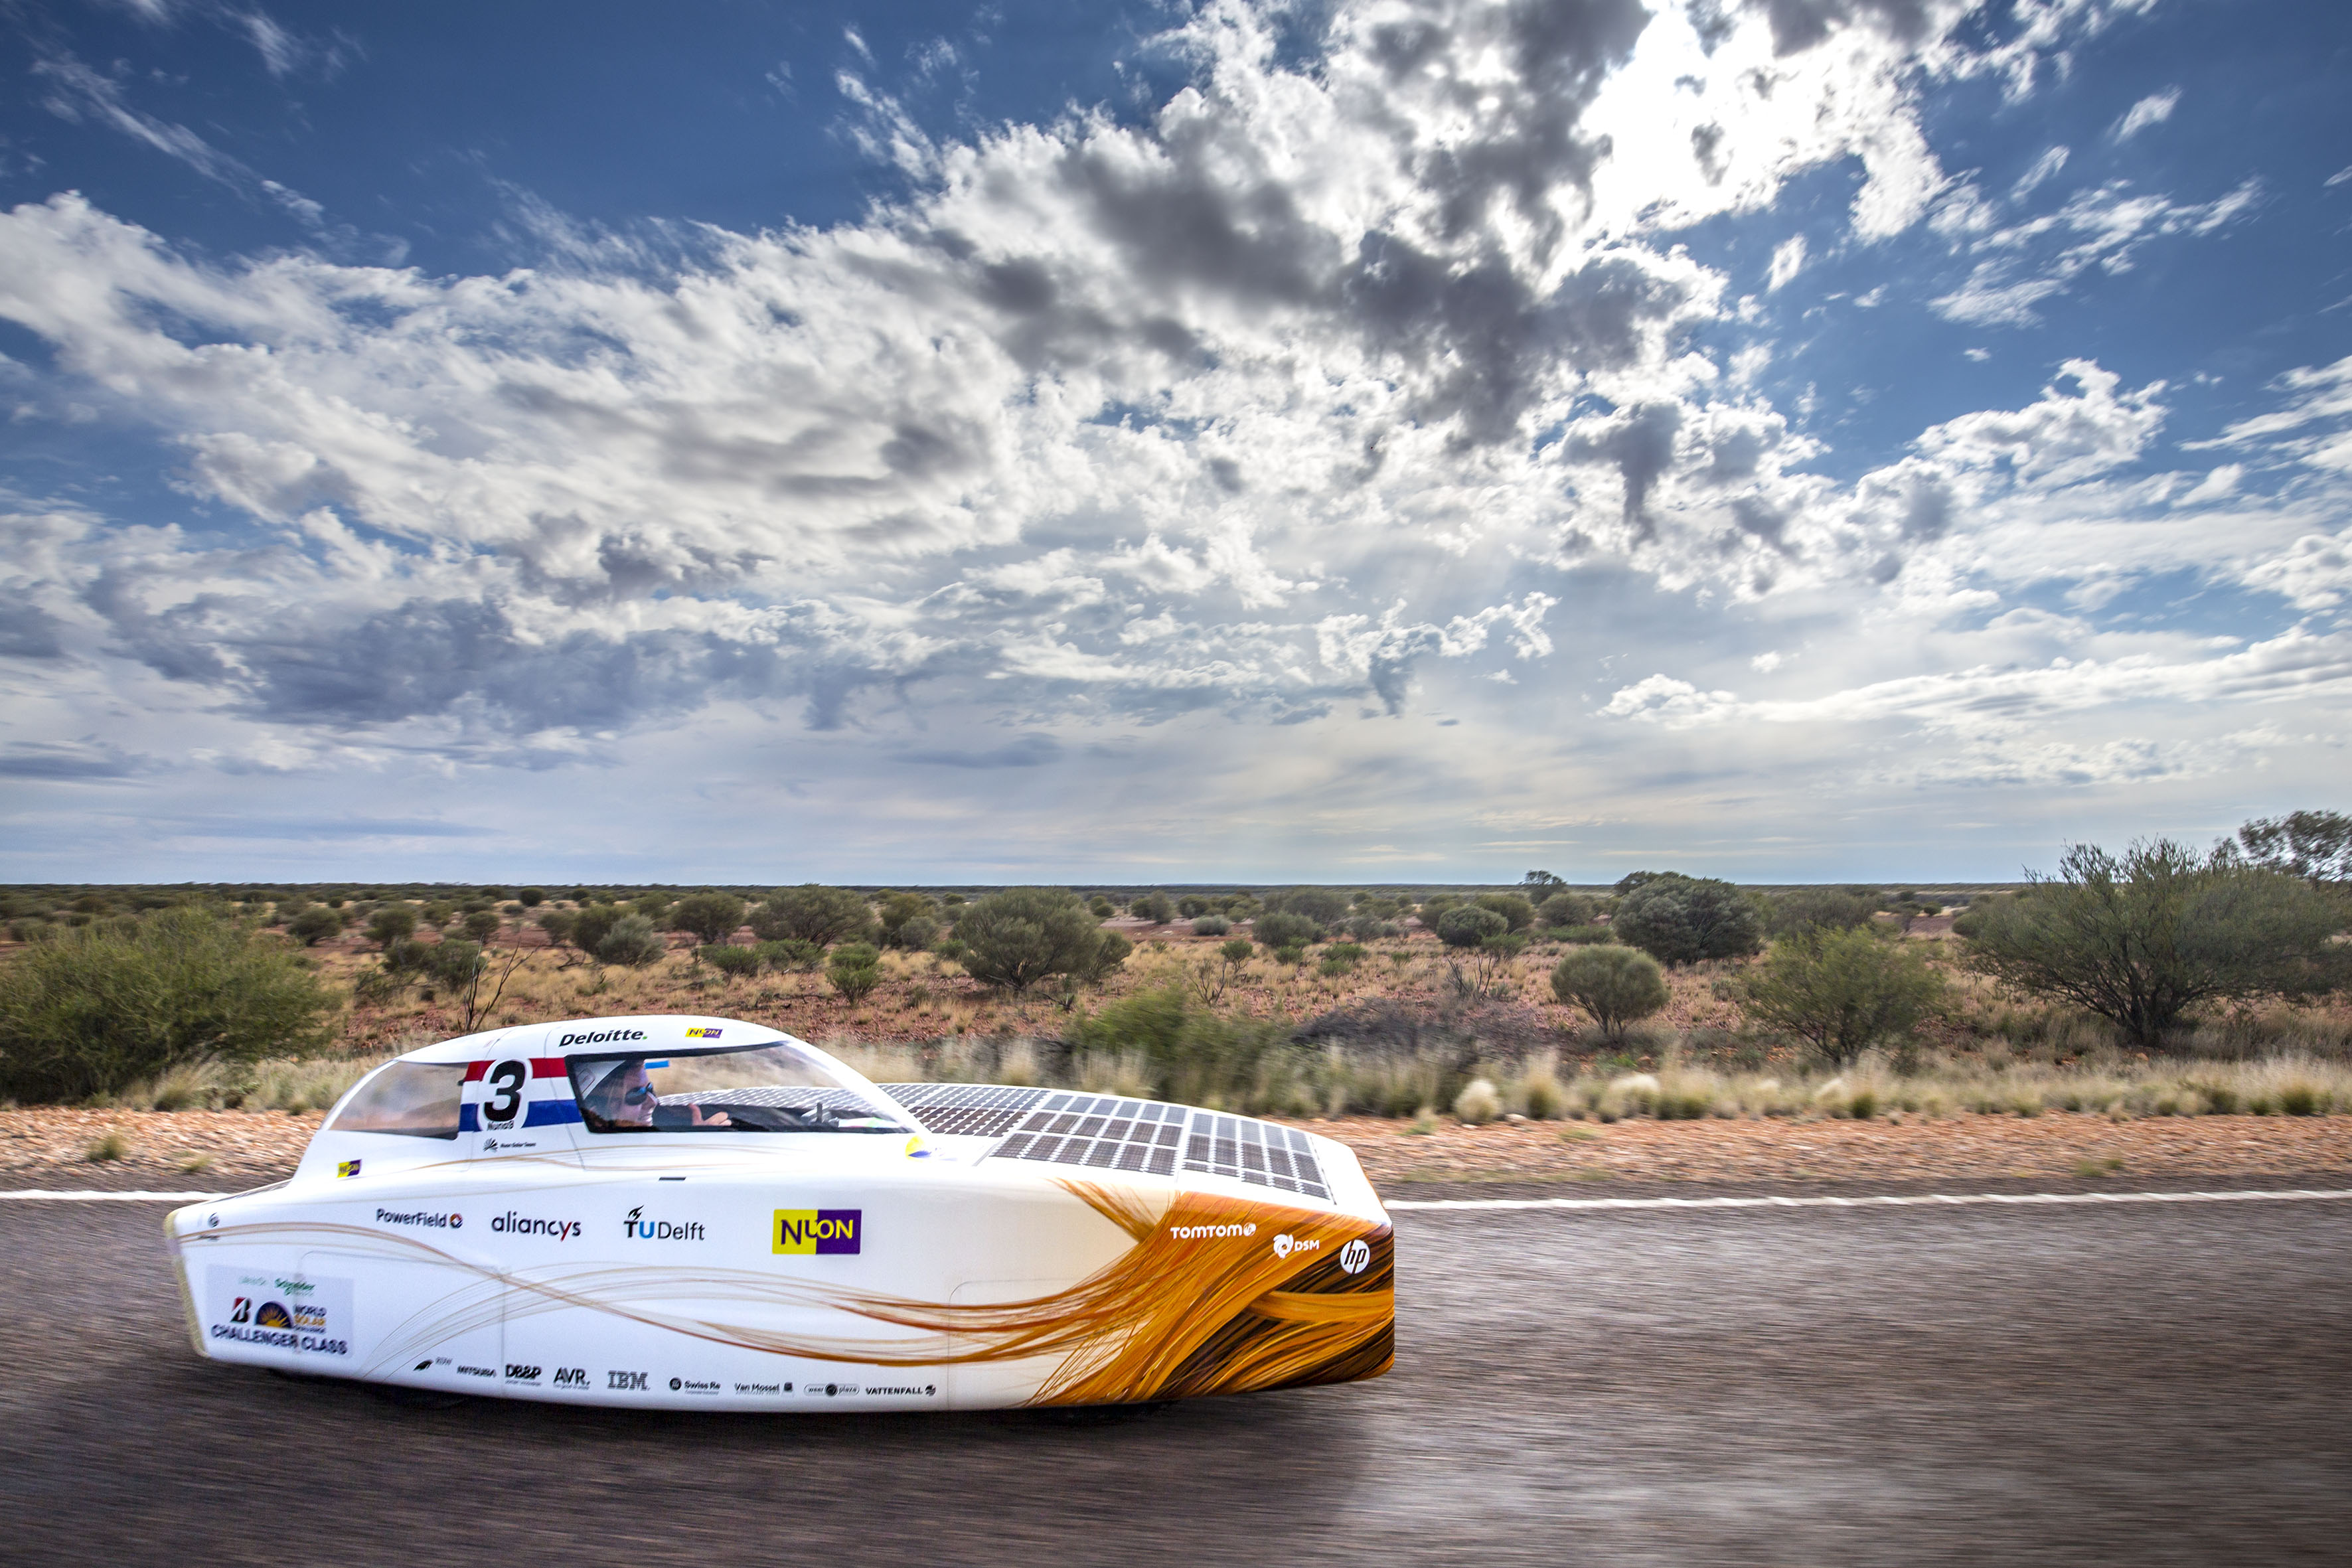 Nuon Solar Team Once More World Champion Solar Car Racing